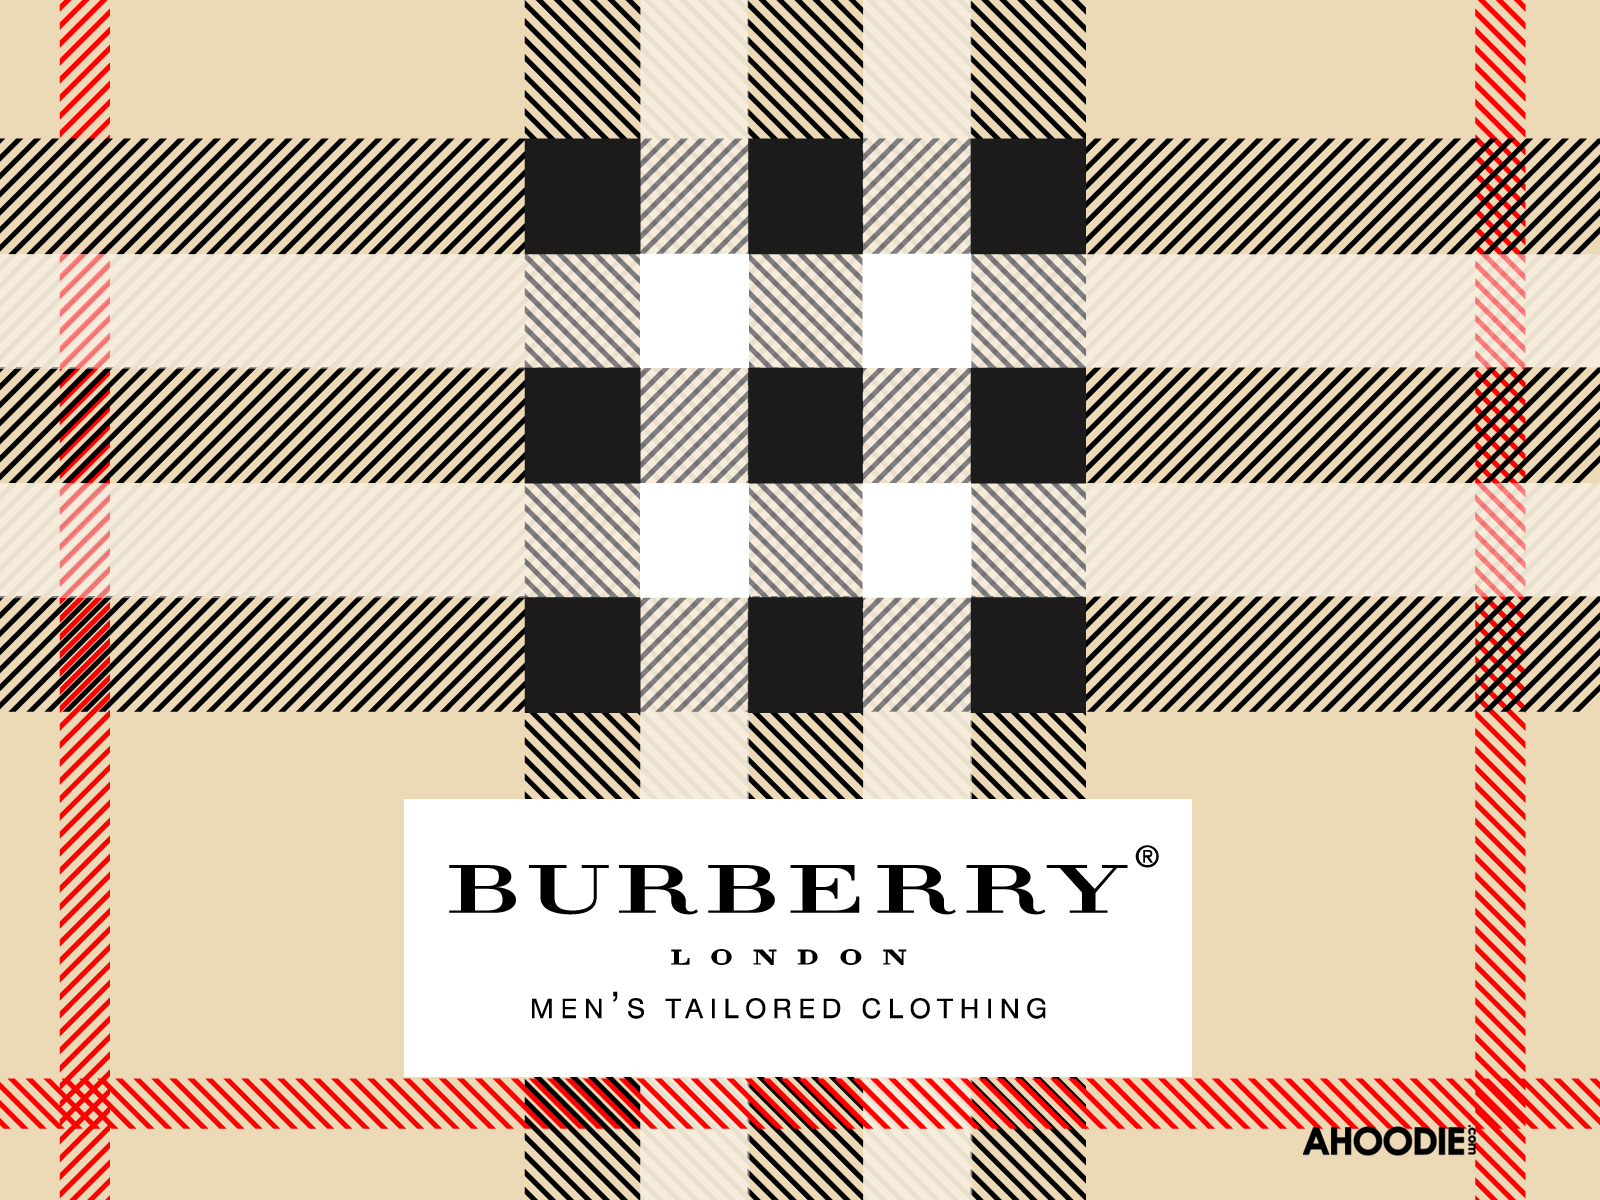 burberry brand audit The zdhc roadmap to zero programme takes a holistic approach to tackling the issue of hazardous chemicals in the global textile, leather and footwear value chain  & conformity guidance, wastewater quality, audit protocol, research, data and disclosure, and training learn more about our work by clicking on the icons below, or start your.